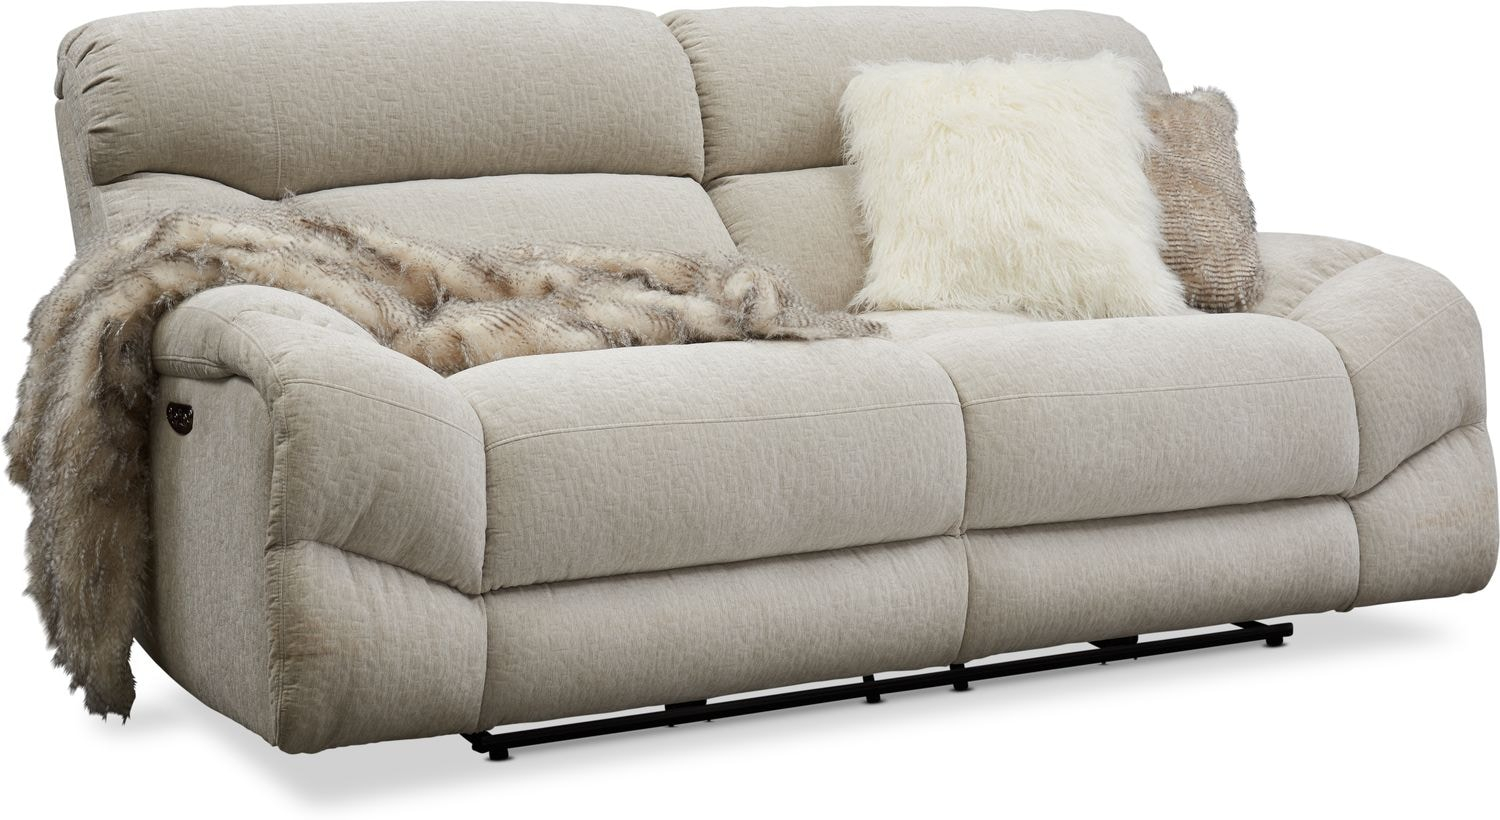 Sofa Power Recliner – Latest Sofa Pictures With Regard To Marco Leather Power Reclining Sofas (View 11 of 15)